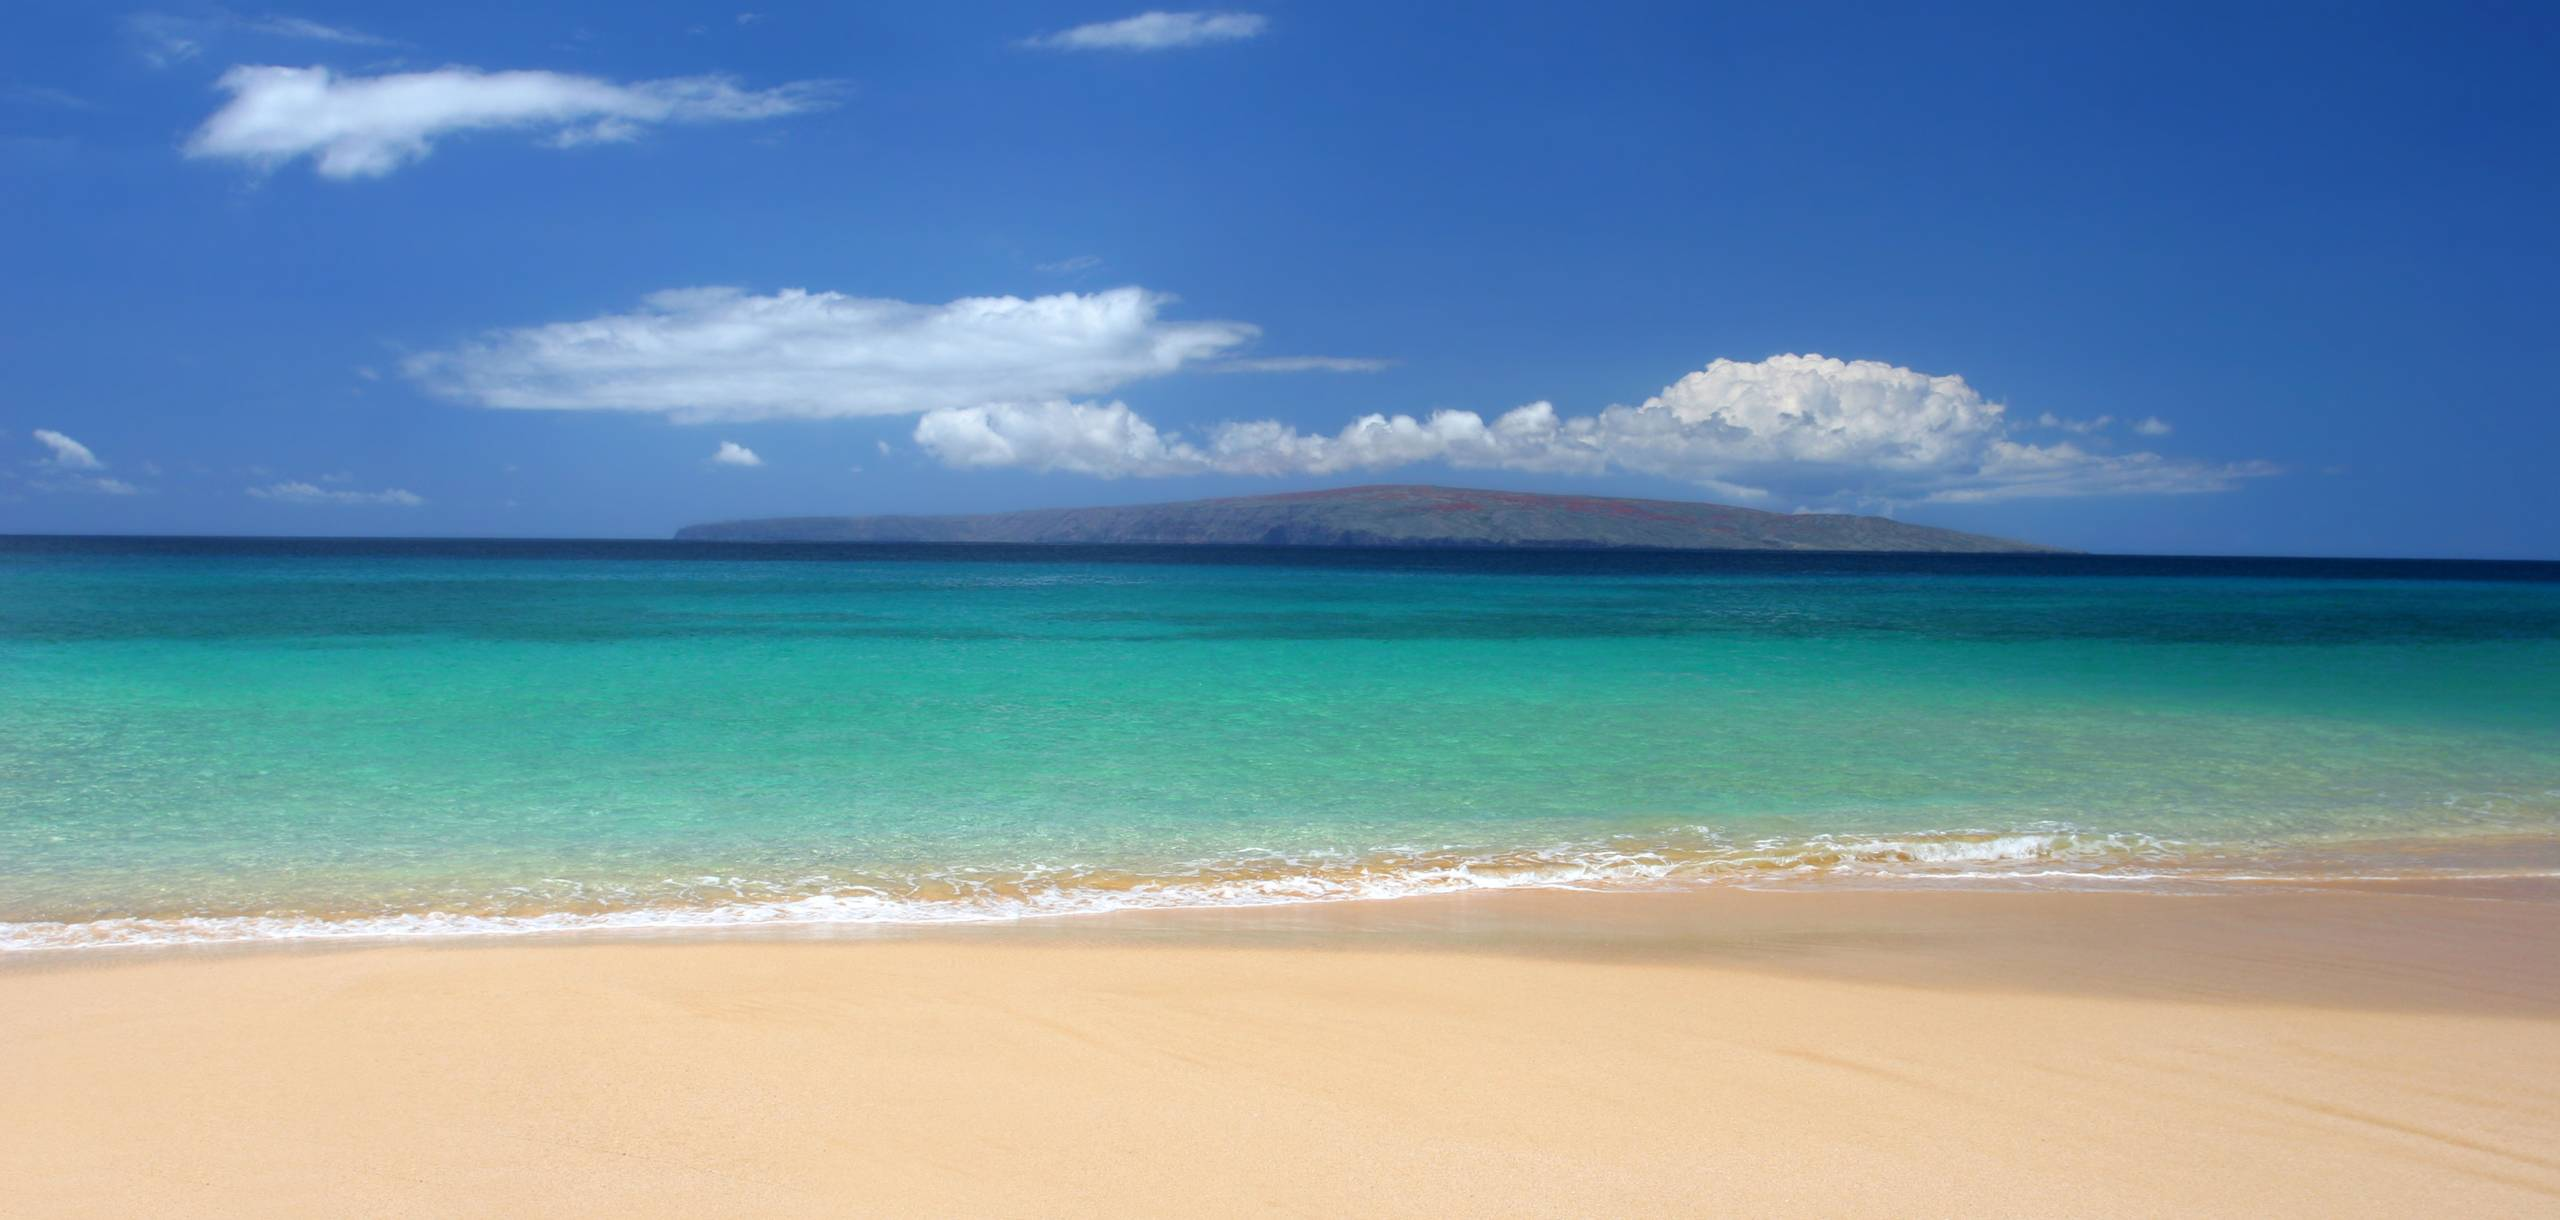 White Sand Beach on Maui Hawaii